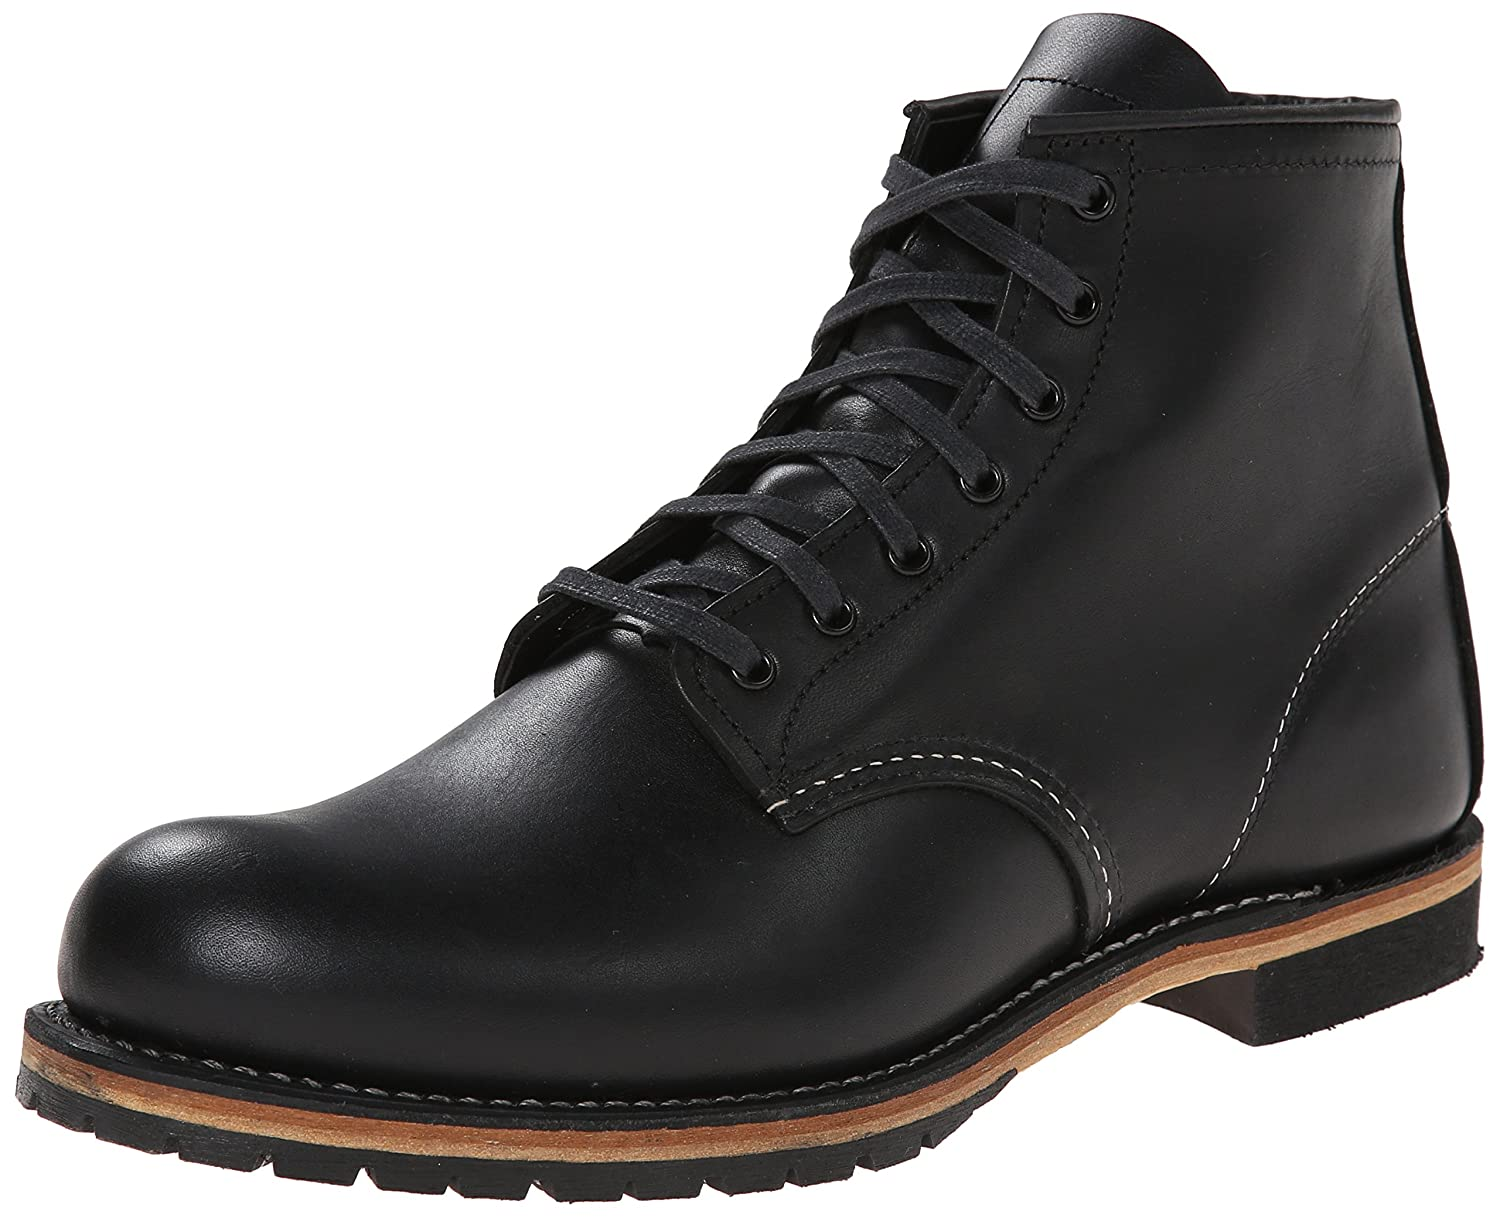 1910s Men's Working Class Clothing Red Wing Heritage Mens Beckman Round 6 Boot $397.89 AT vintagedancer.com